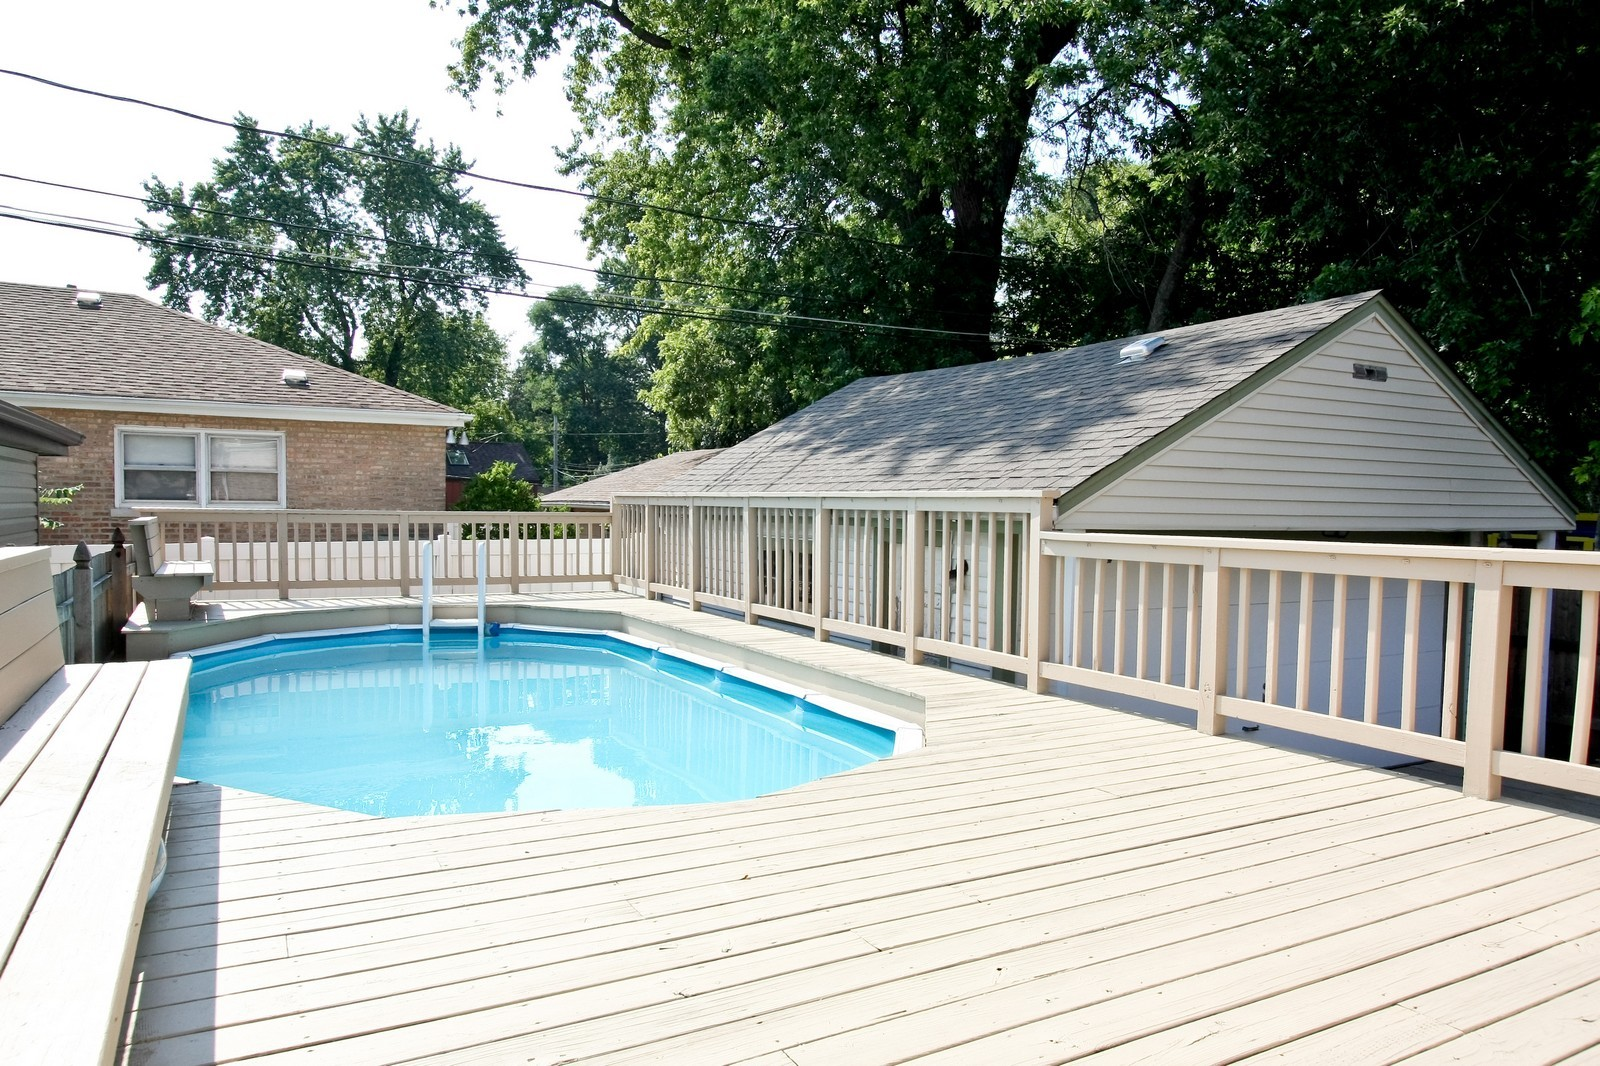 Real Estate Photography - 11468 S Homan, Chicago, IL, 60655 - Pool